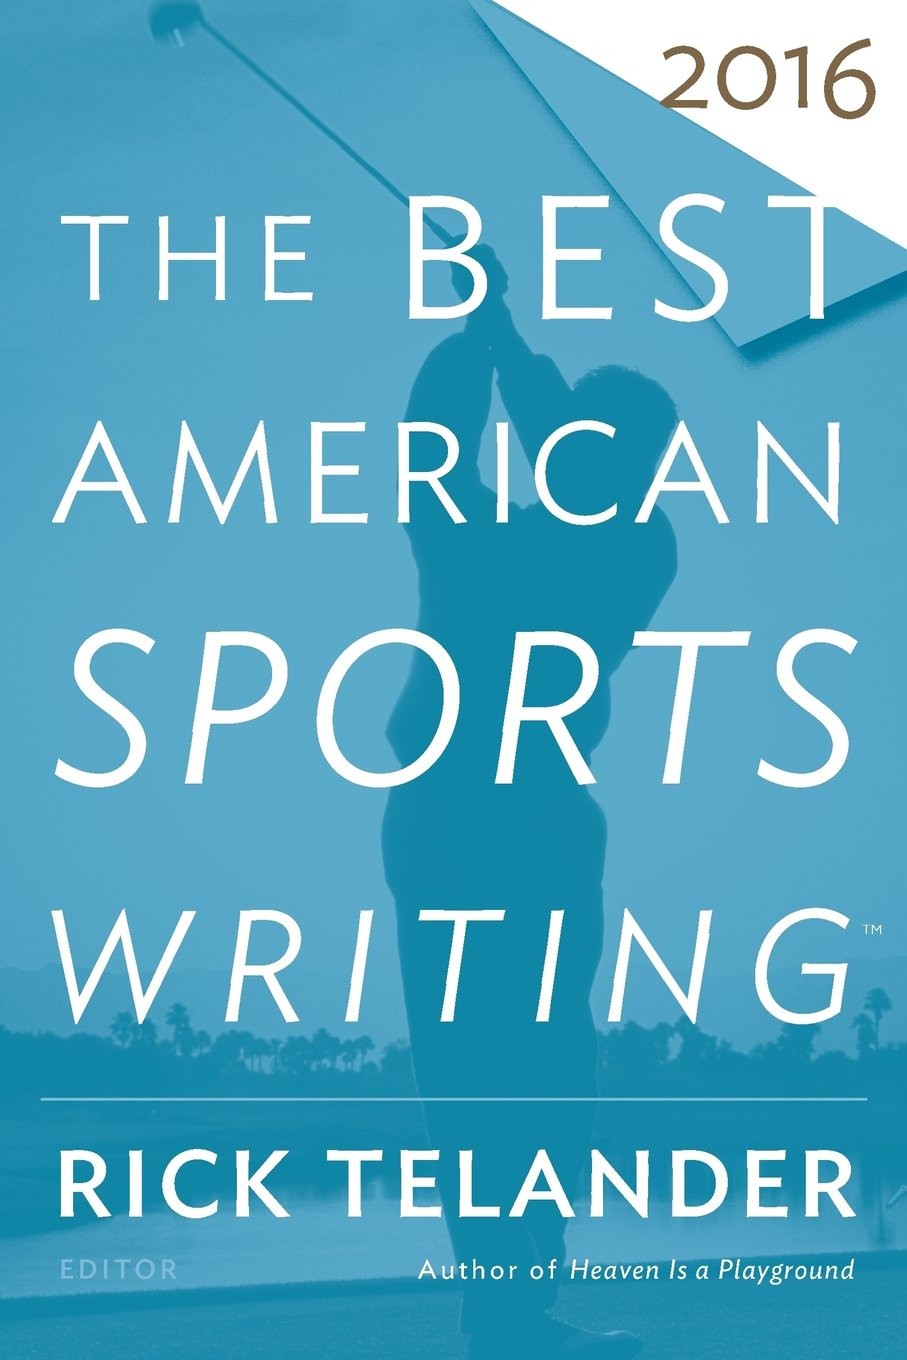 the best american sports writing rick telander glenn stout the best american sports writing 2016 rick telander glenn stout 9780544617315 com books